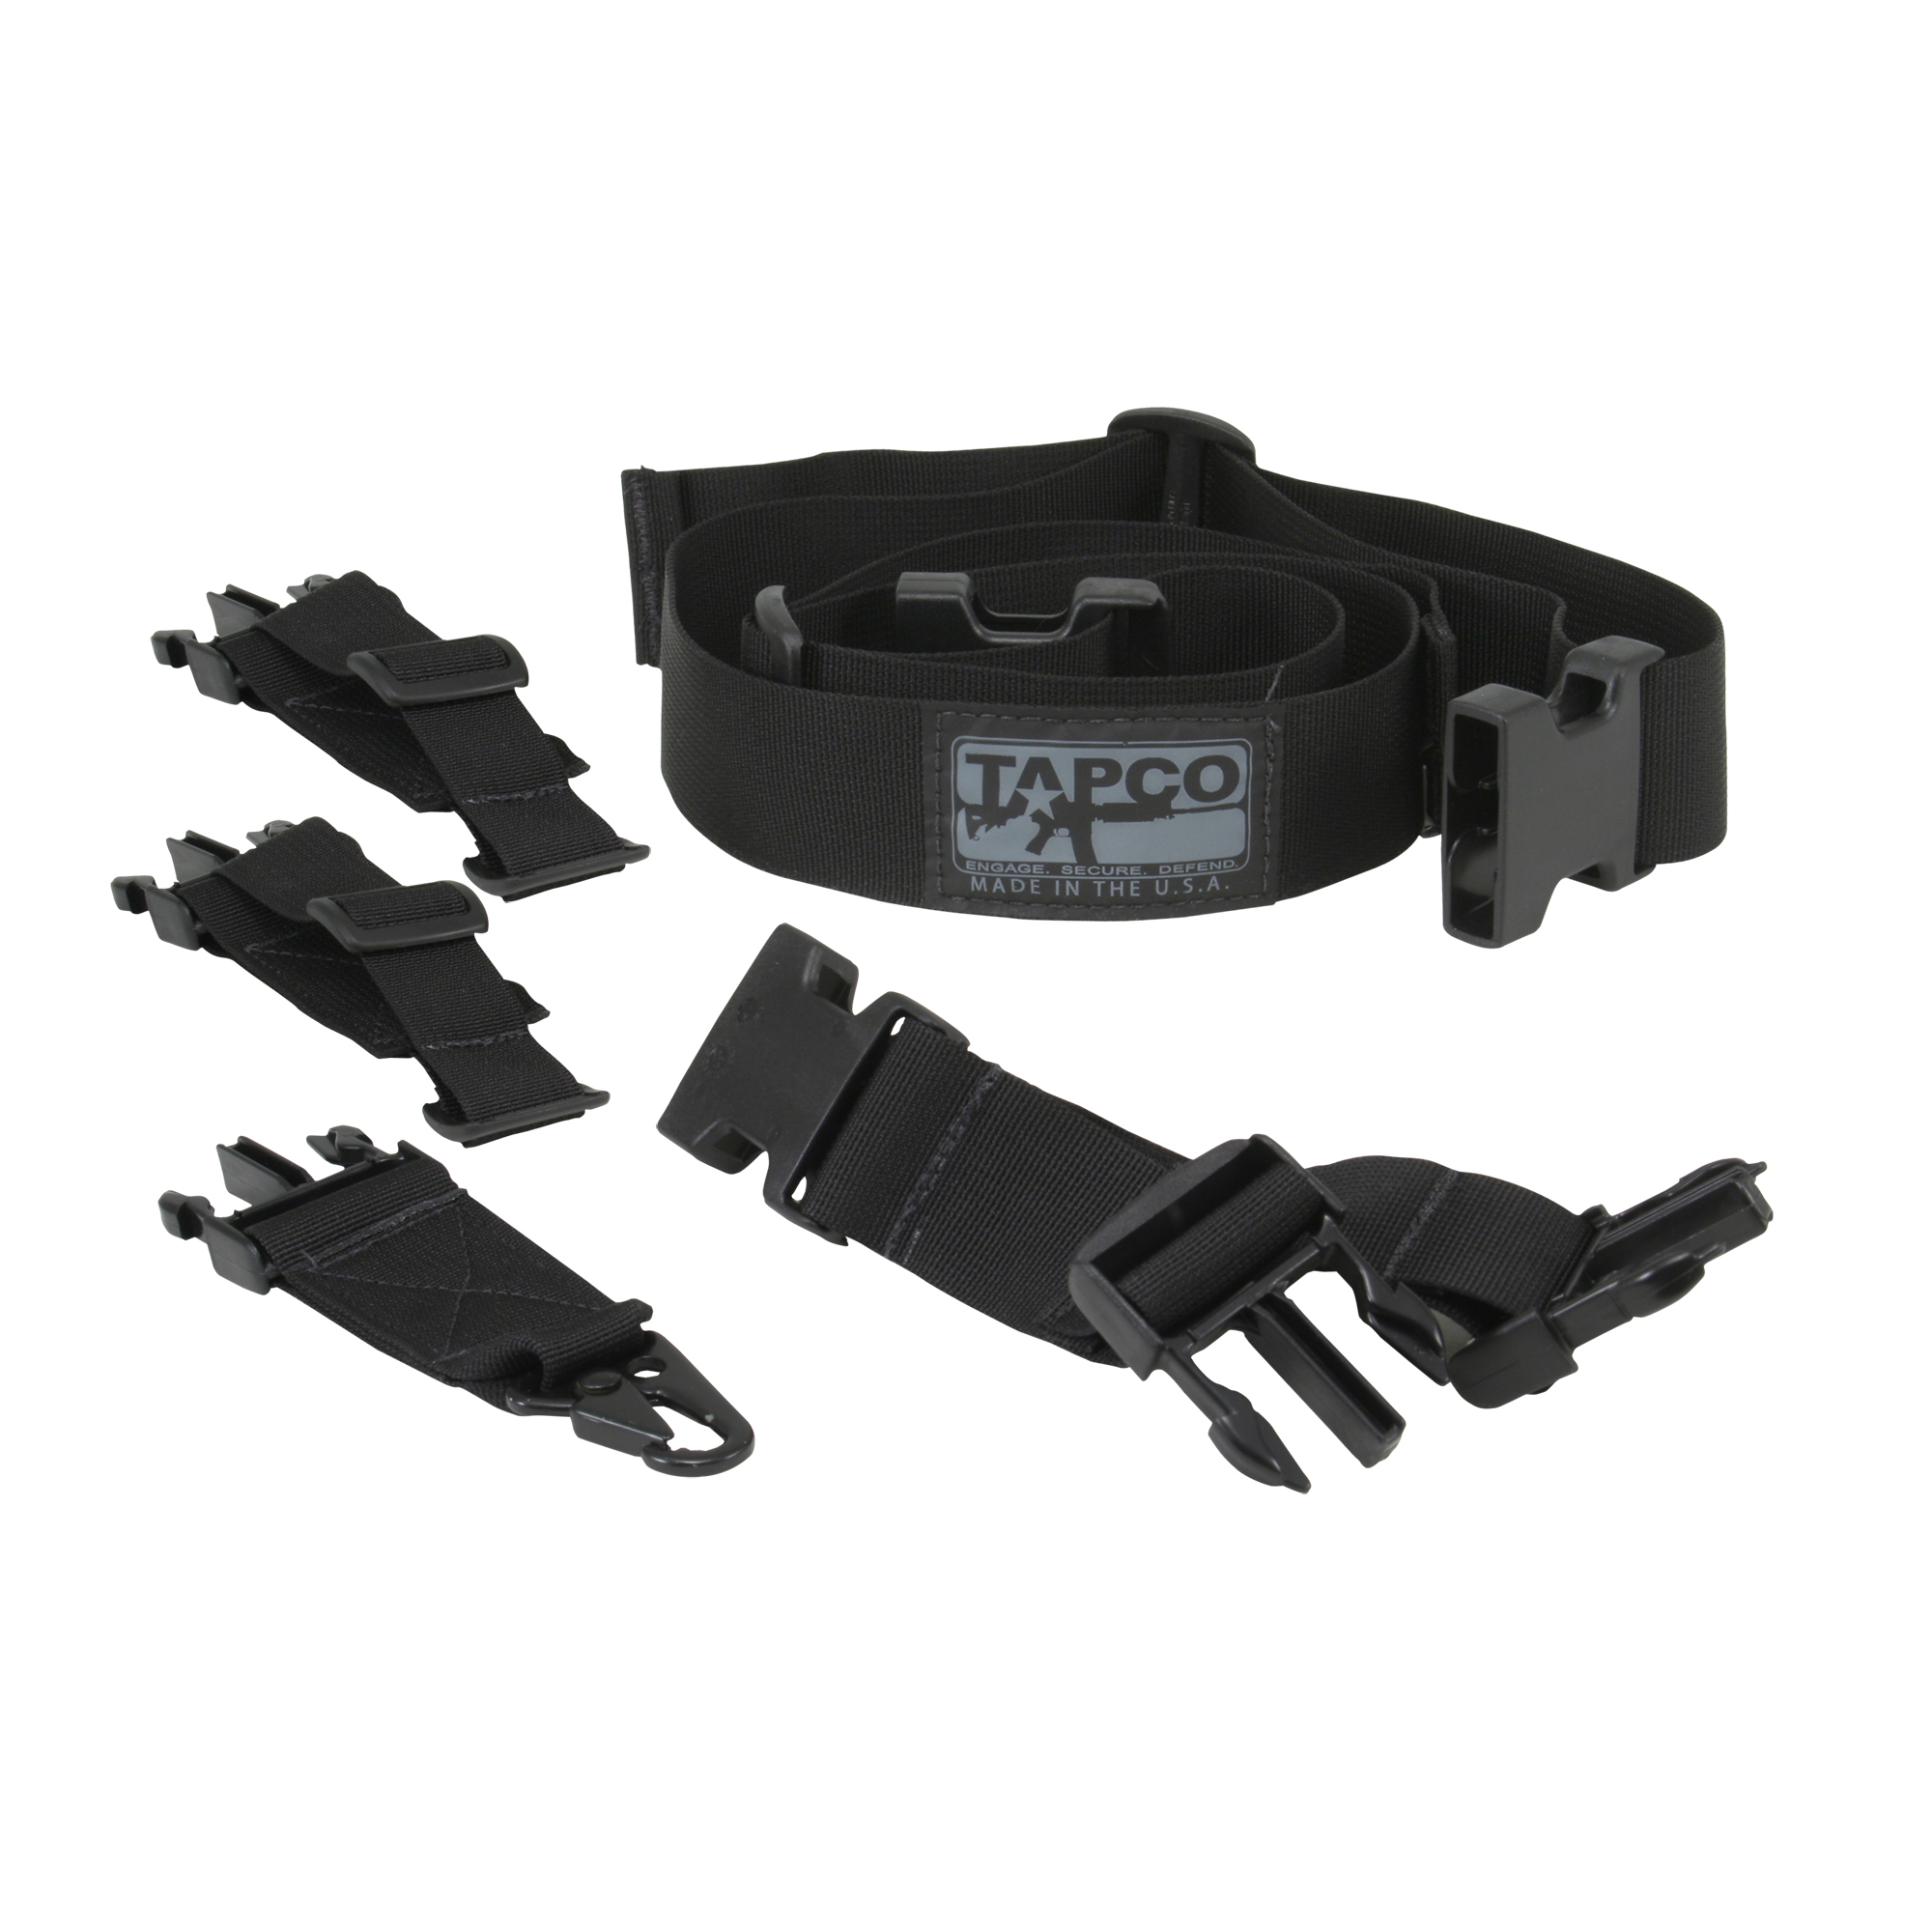 "There is no reason to buy more than one sling to get a single and 2-point attachment setup. The INTRAFUSE(R) Sling System makes sure you don't have to. This sling system comes with everything needed to attach as a single point or a 2-point sling. Never leaving good enough alone"" Tapco has also enhanced some of the components in the system. Tapco has replaced the old HK style hook adaptor with a new MASH Hook making it easier to use with gloves and allowing it to fit almost any size connector. The hook is also covered with an elastic ""sock"" that protects the firearm from scratches and reduces noise. It does not stop there though. Tapco has also made sure that their sling system will work with all popular stocks"" fixed and collapsible"" by adding a short and long loop attachment. Still 100% U.S. Made too!"